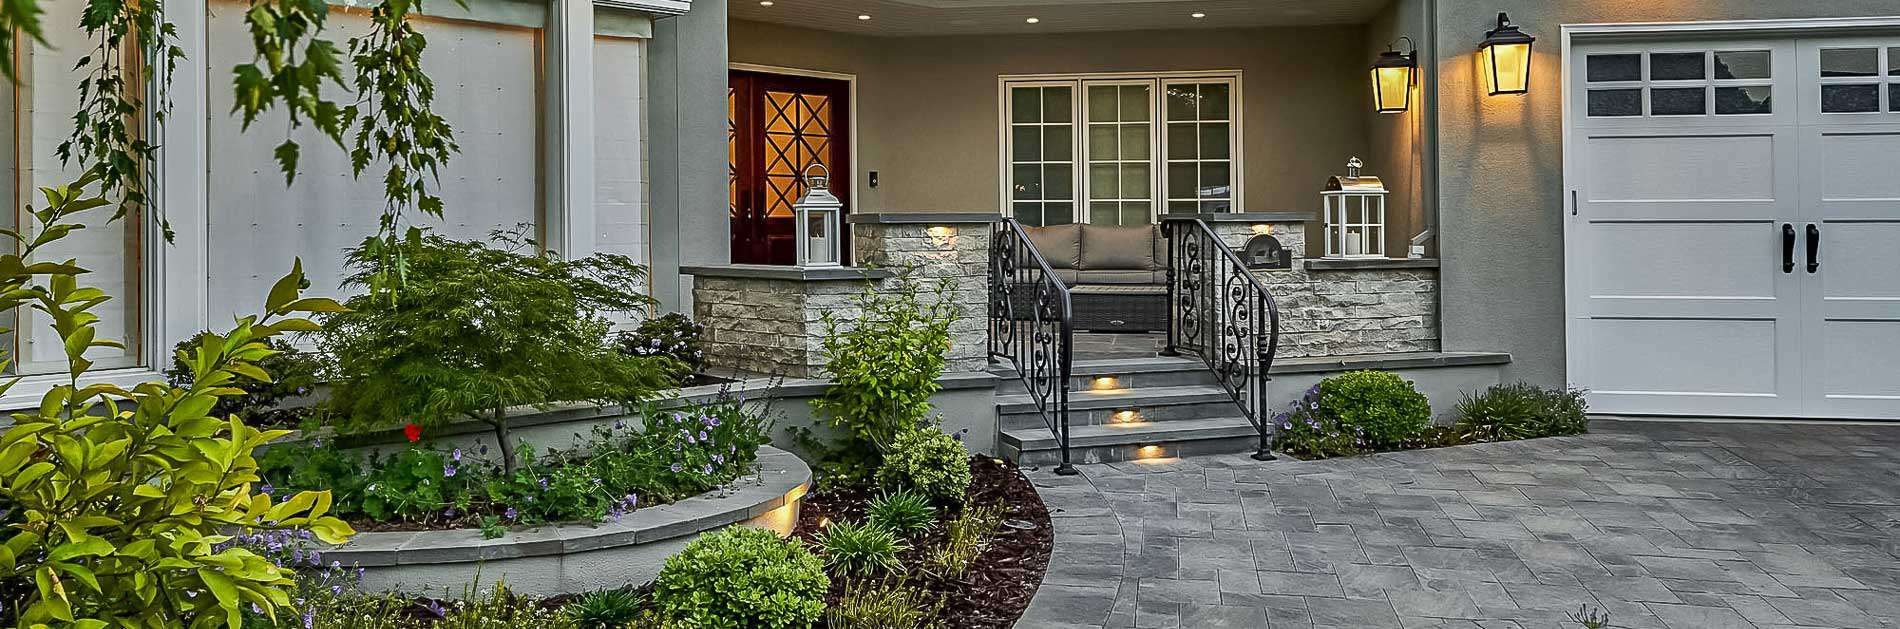 Front entryway with flagstone driveway and landscaped garden feature